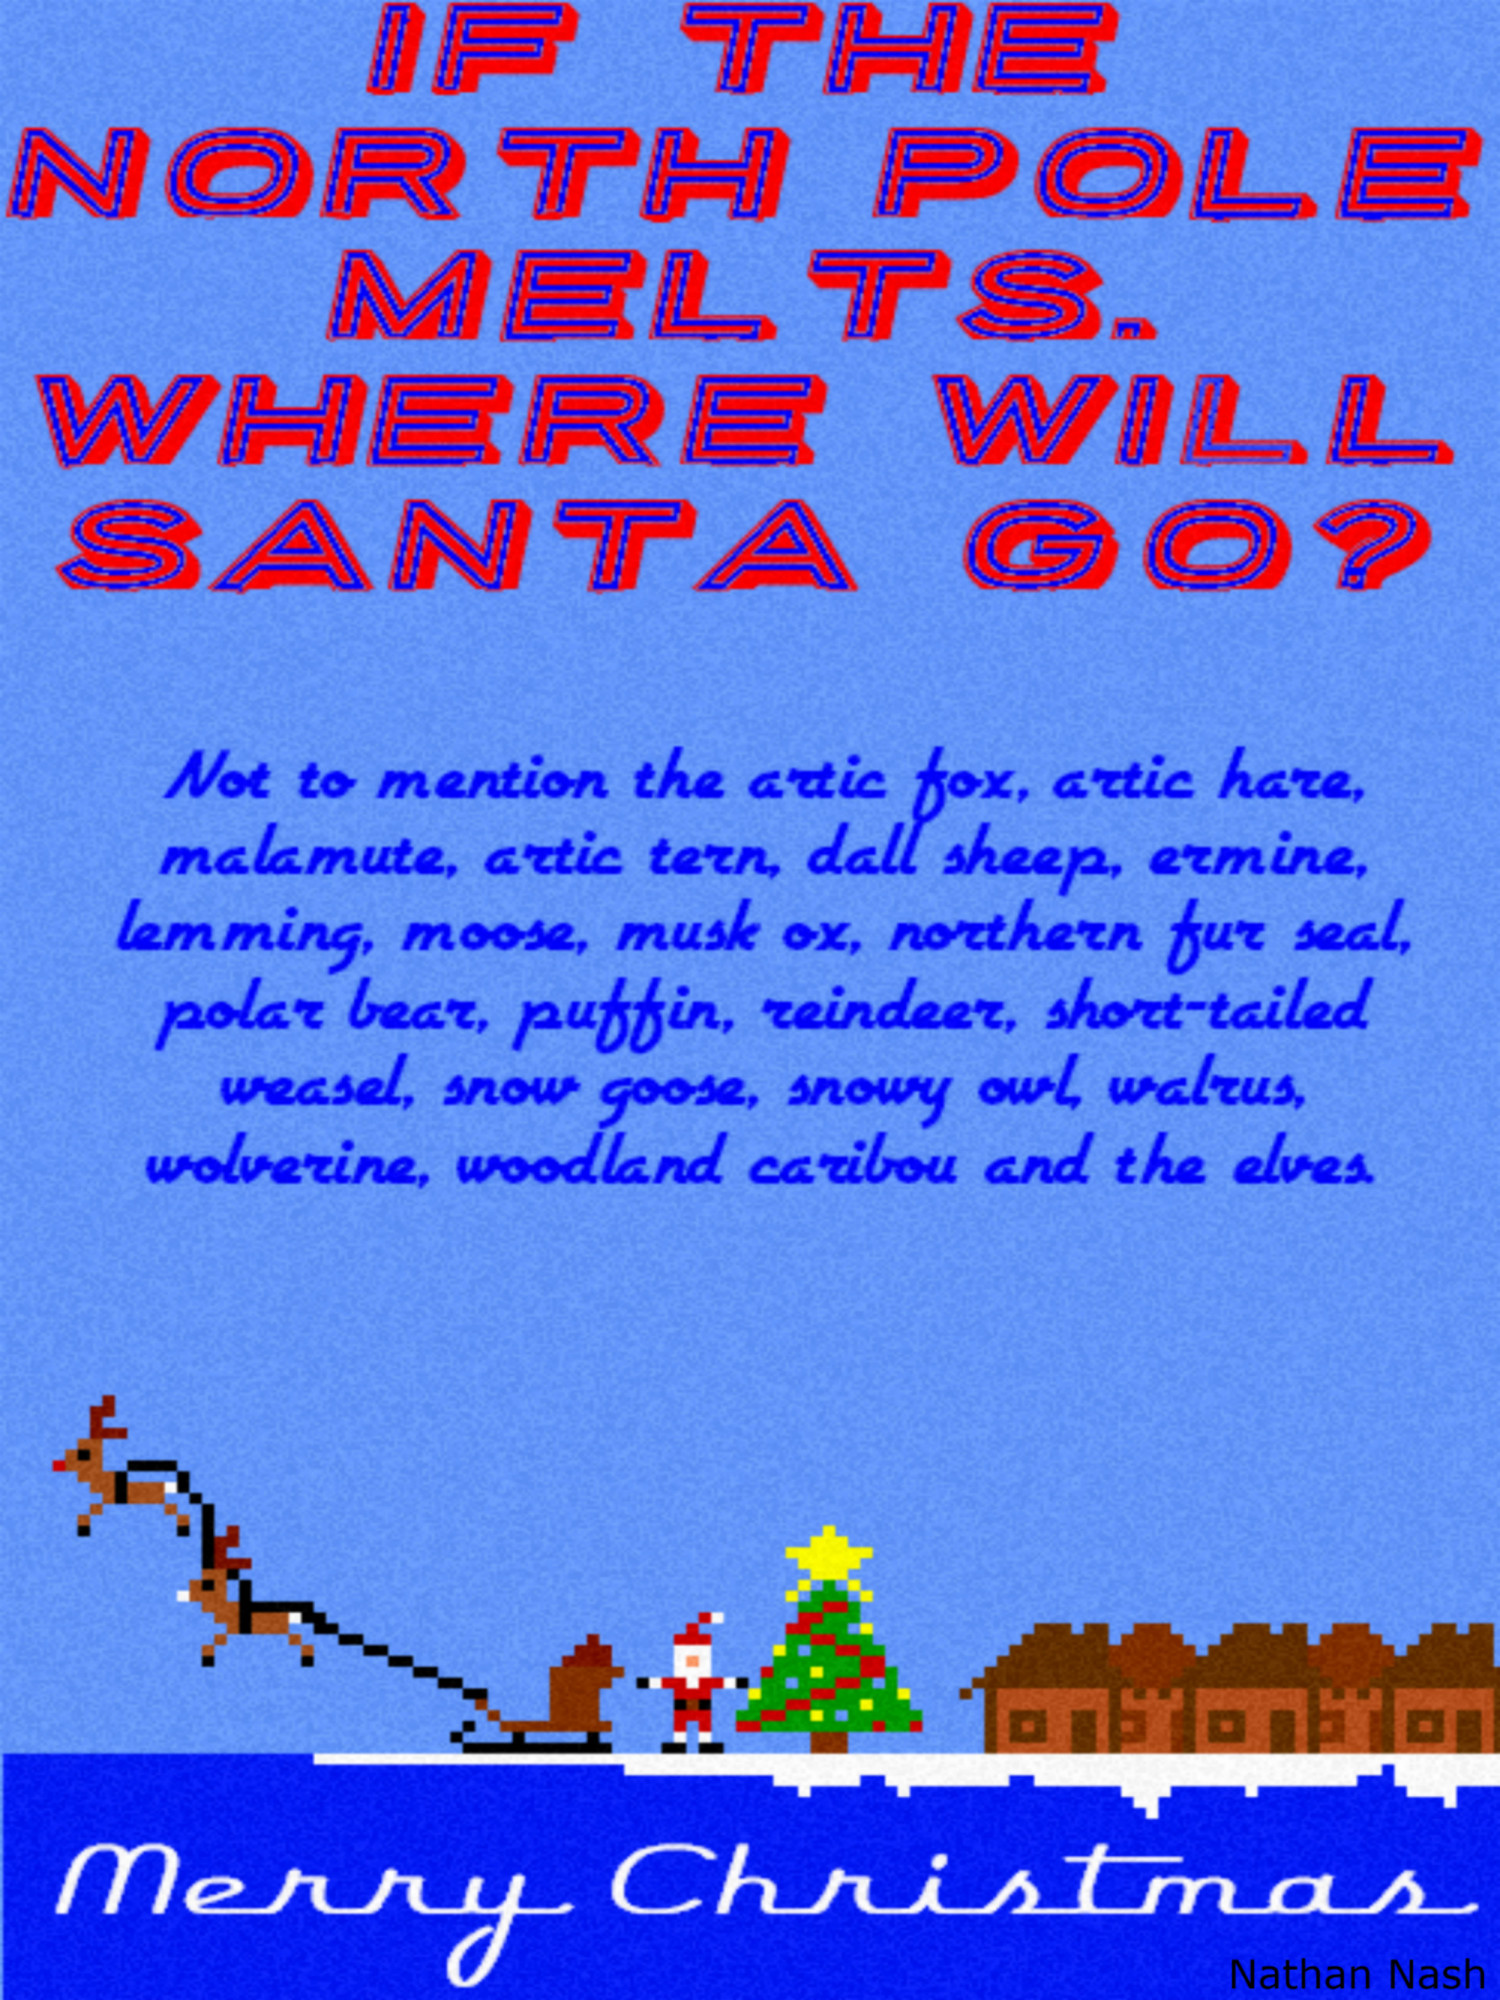 where will Santa go? Infographic